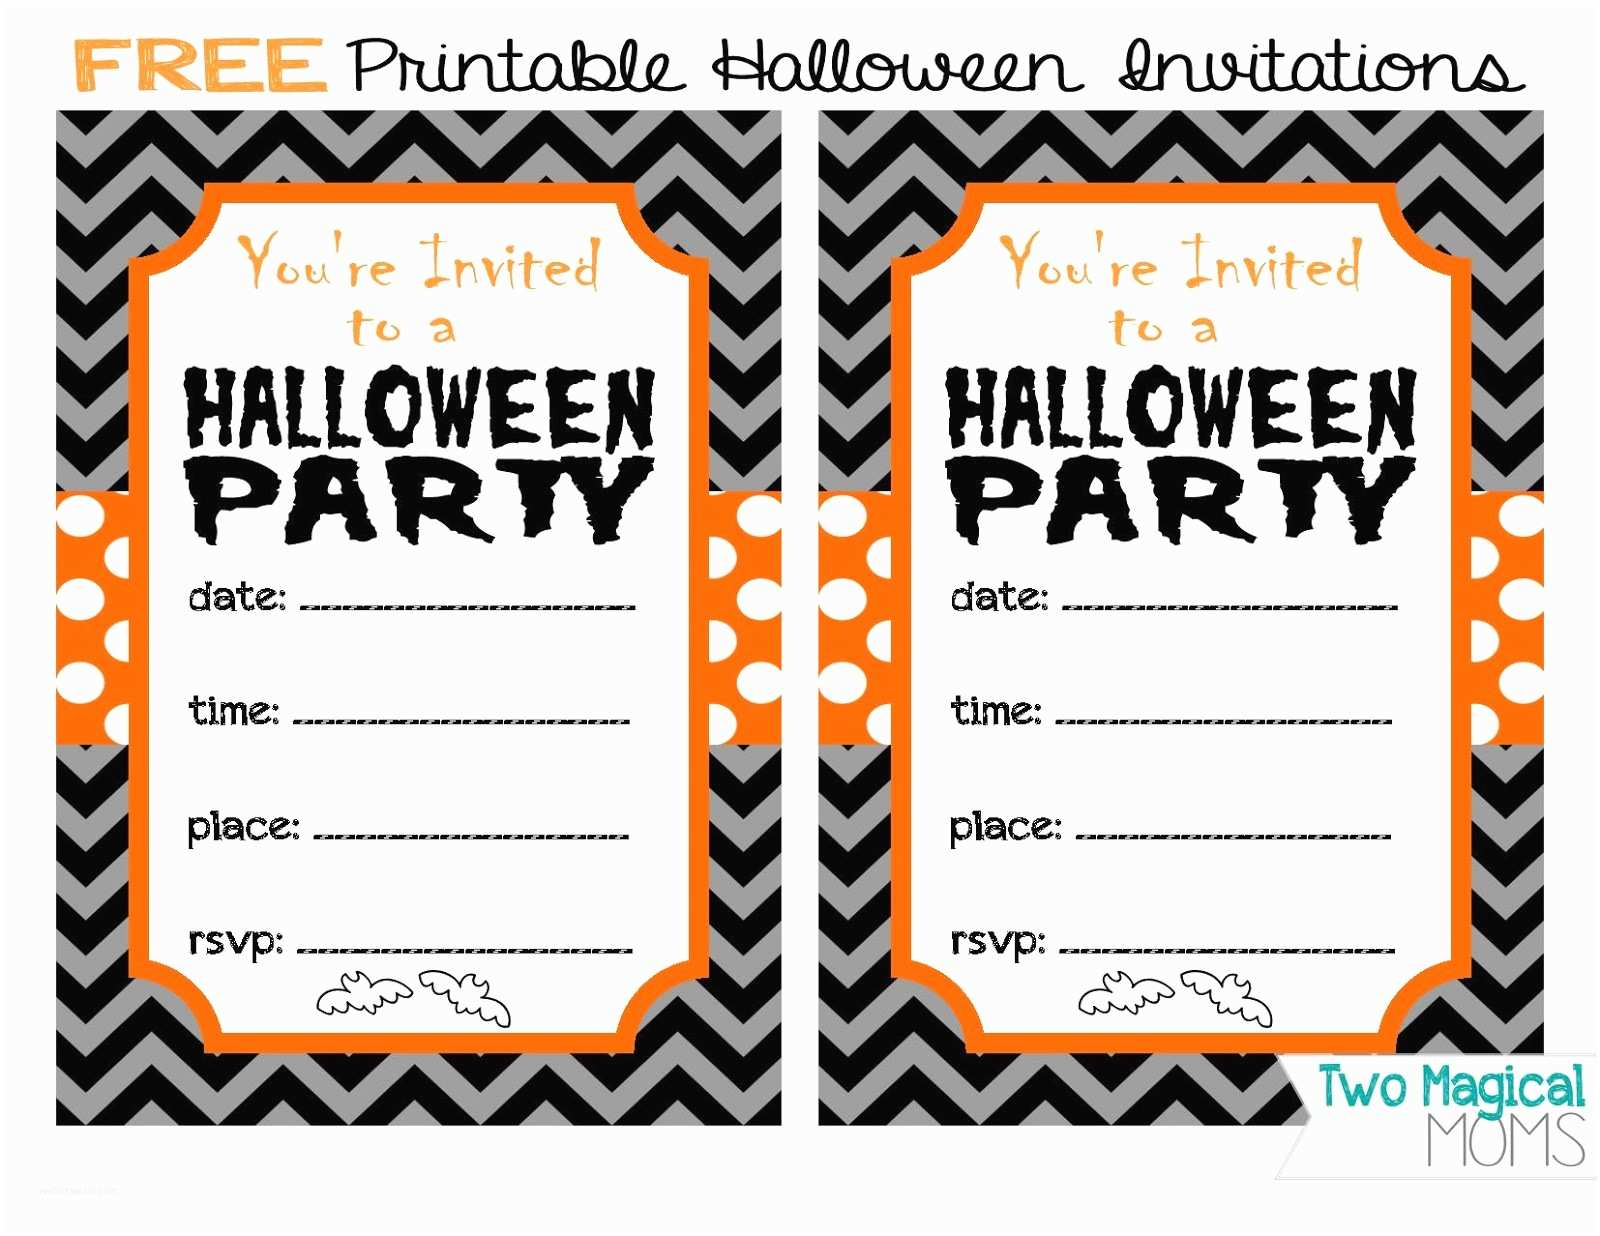 Halloween Party Invitation Template Two Magical Moms Free Printable Halloween Invitations